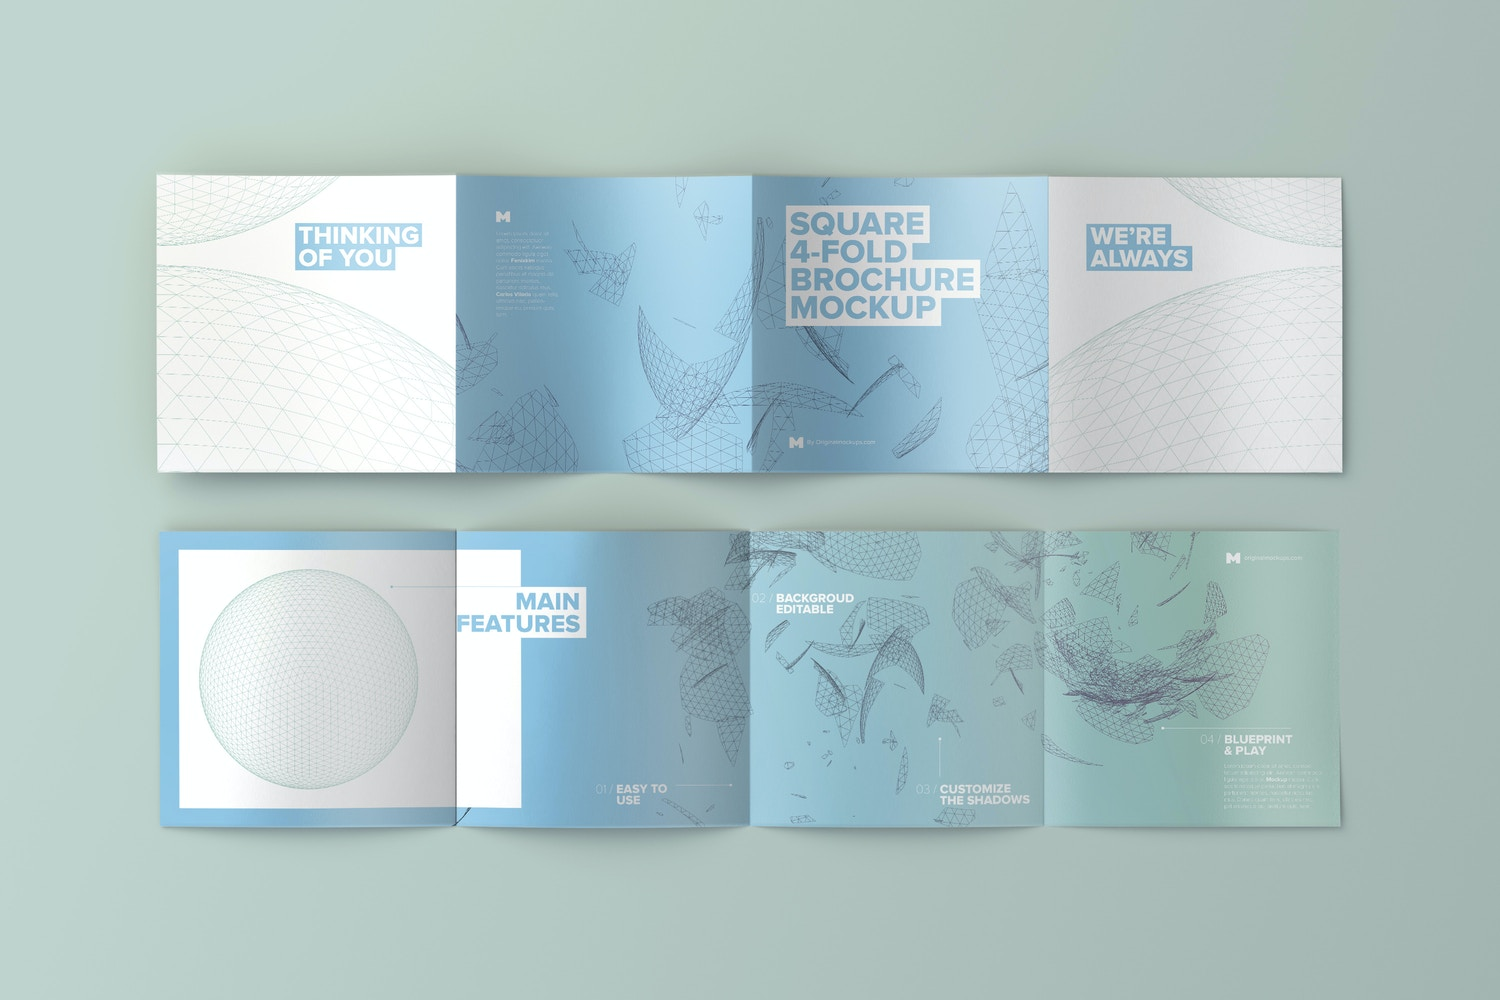 Spread Square 4-Fold Brochure Outside and Inside Mockup 02 - Custom Background